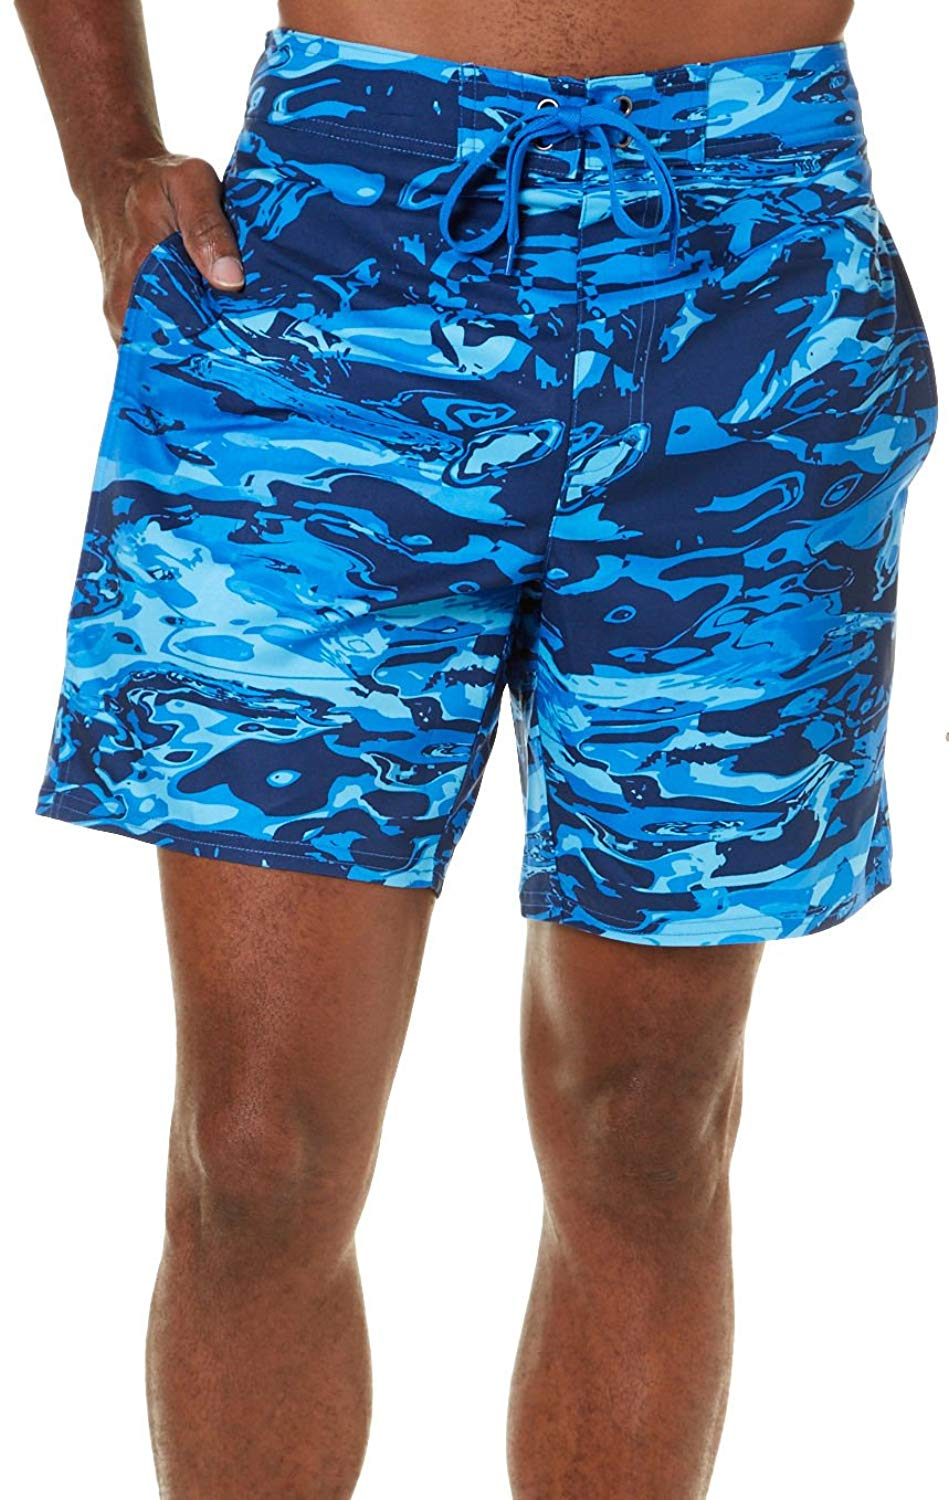 51d2361c020c1 Cheap Camo Trunks, find Camo Trunks deals on line at Alibaba.com